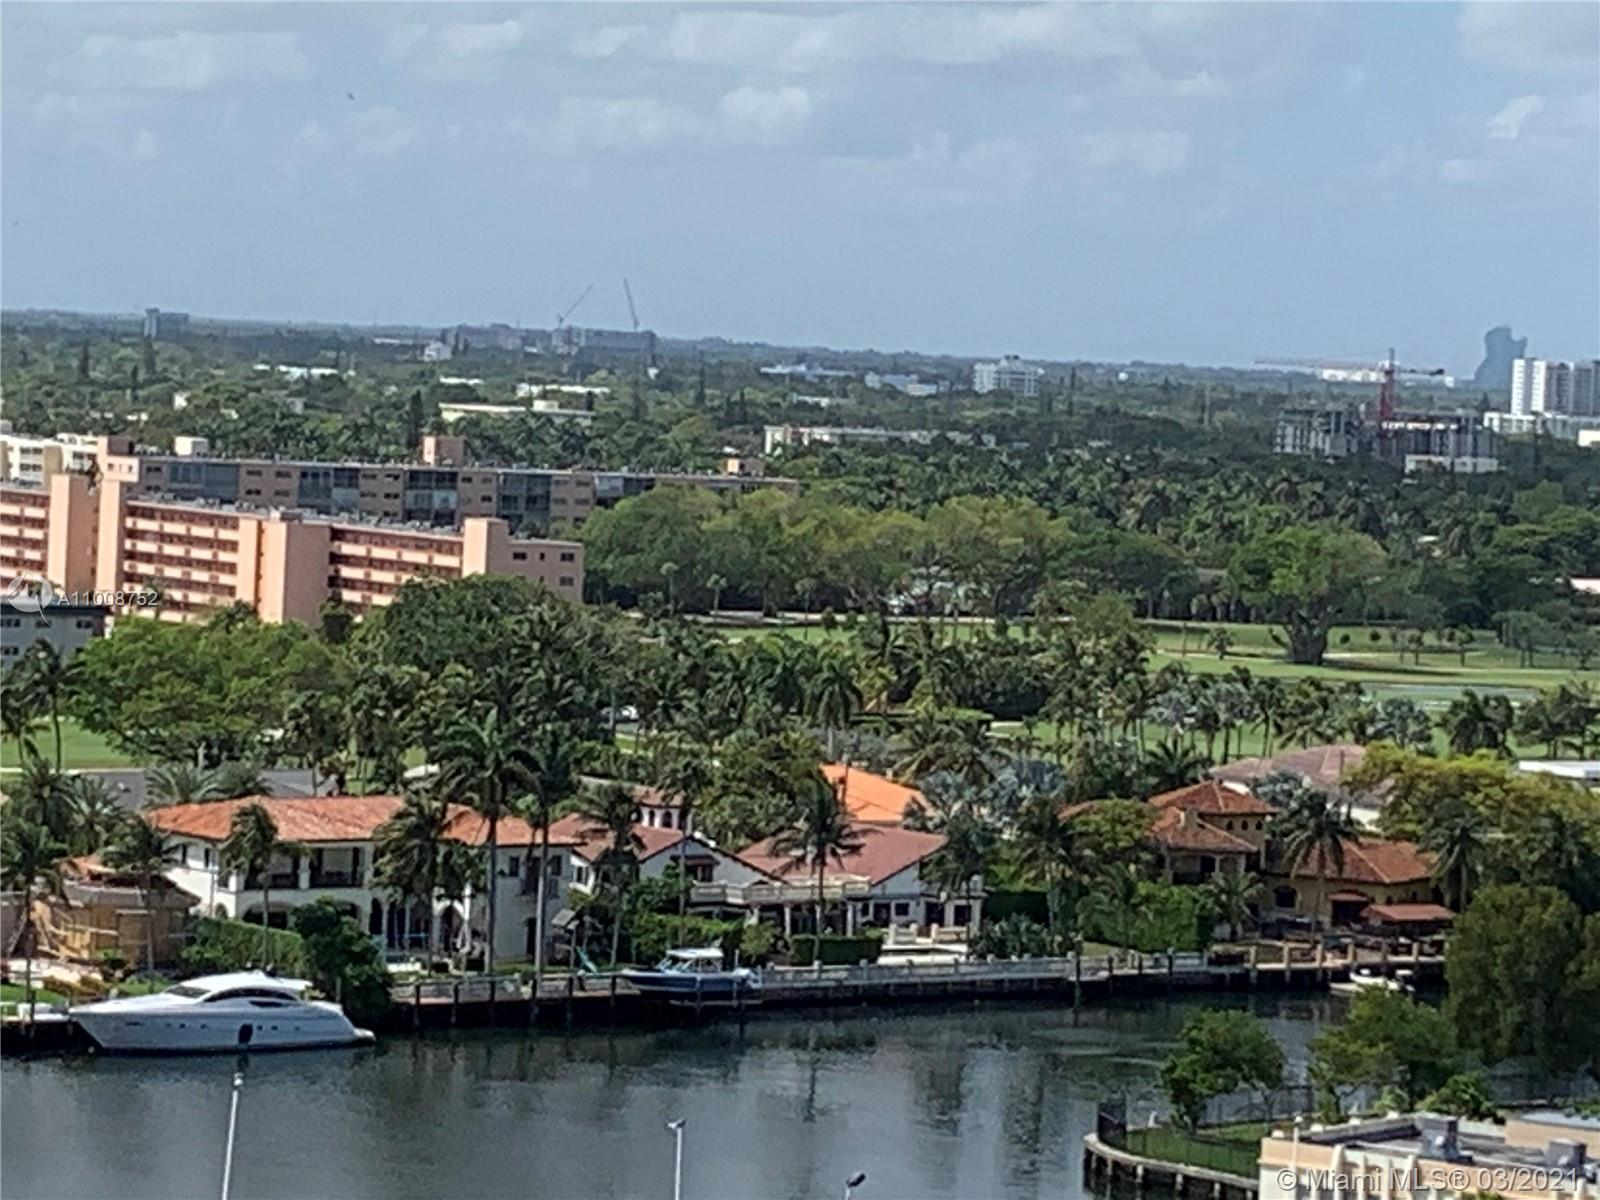 FULL 2 BEDROOM CORNER WITH VIEWS OF THE DIPLOMAT WATERWAY & GOLF COURSE FROM THE LARGEST BALCONY IN